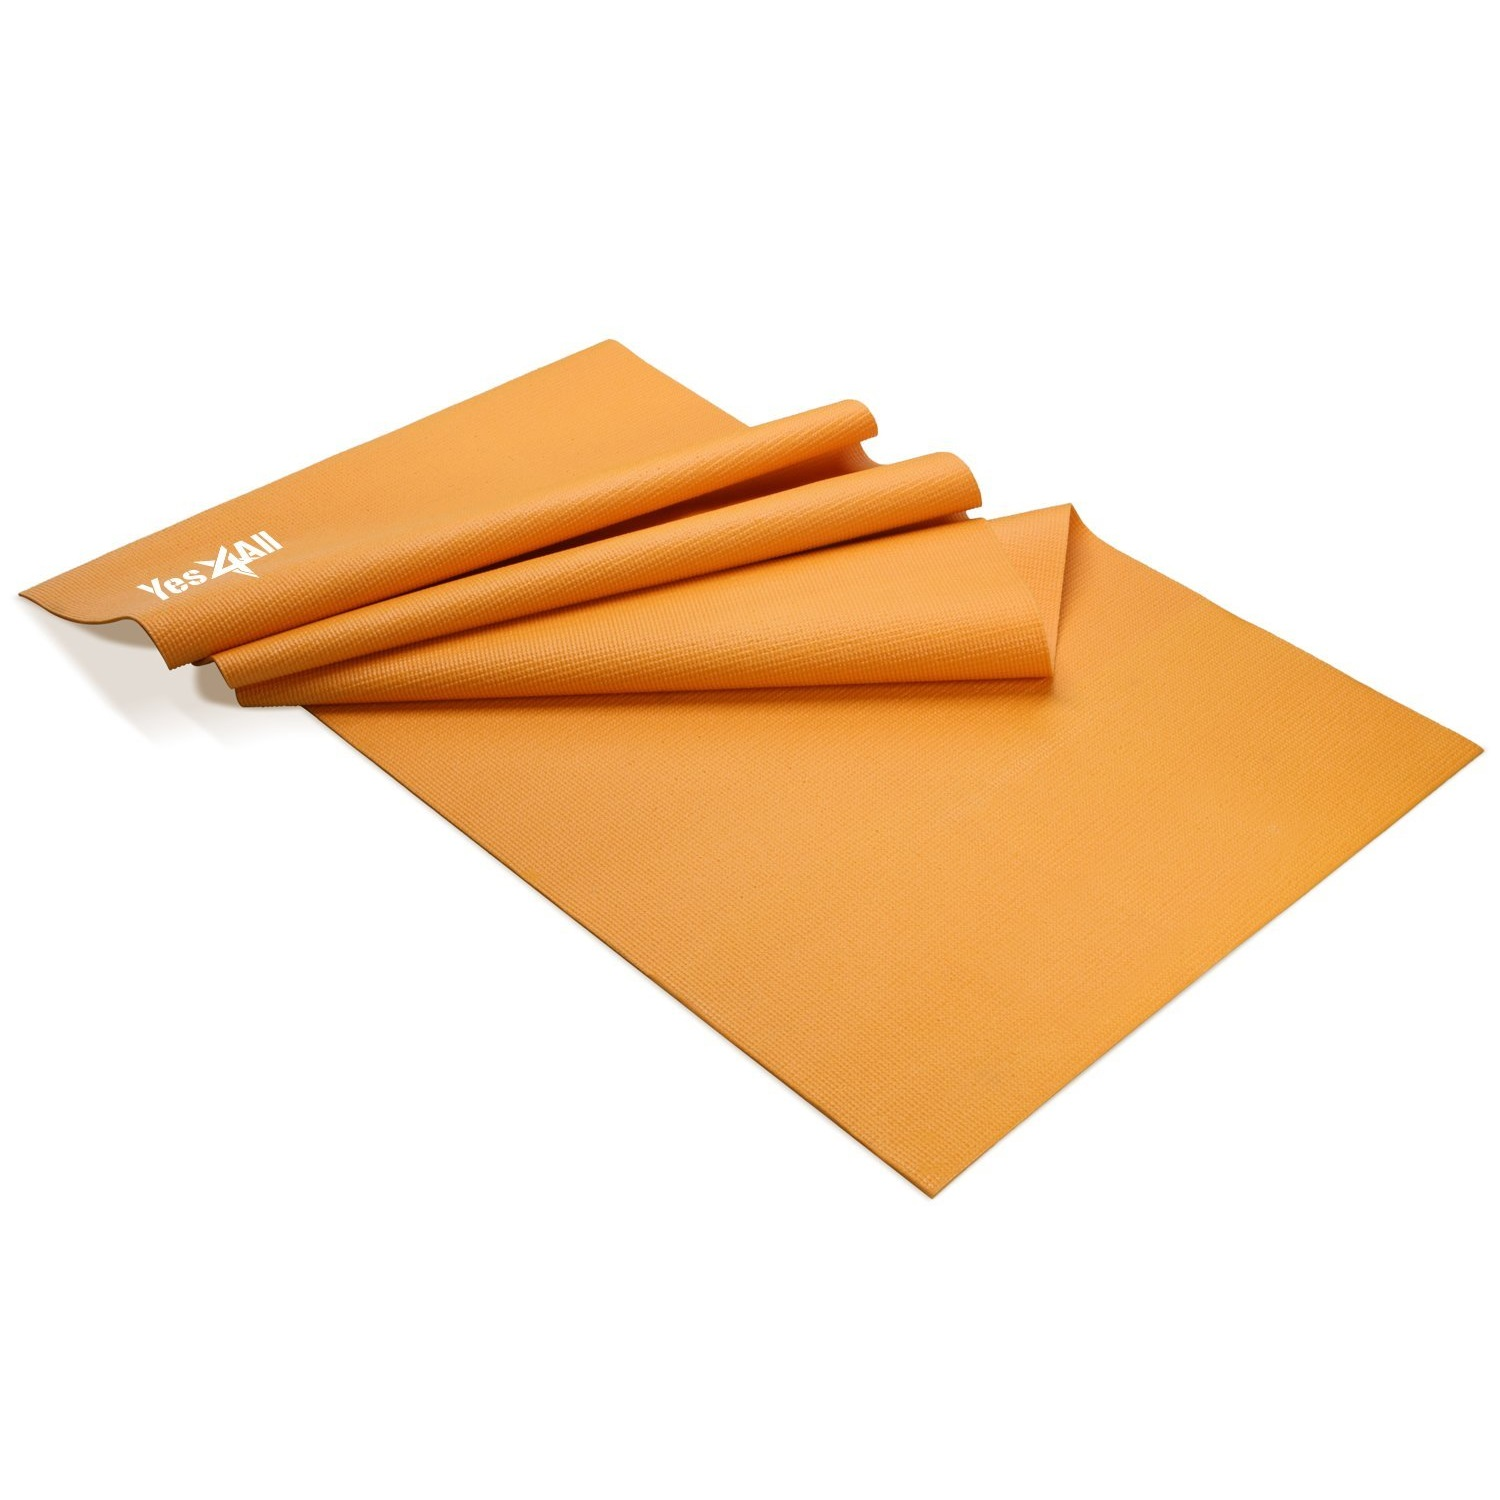 yes4all premium pvc exercise yoga mat orange